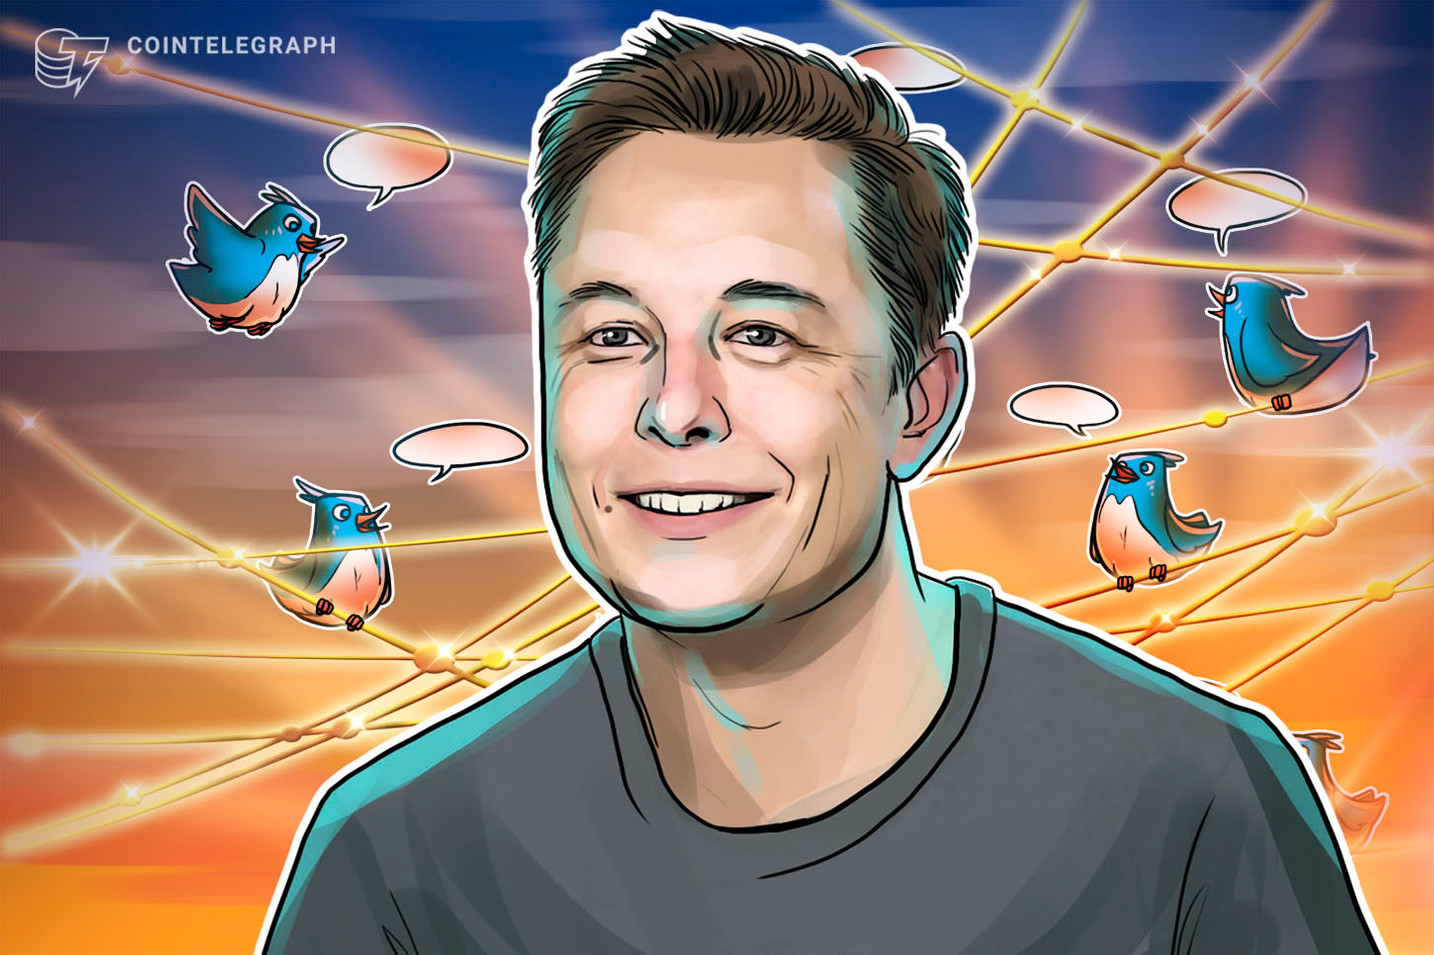 Elon Musk's latest canine-themed tweet didn't pump Dogecoin as much as SHIB